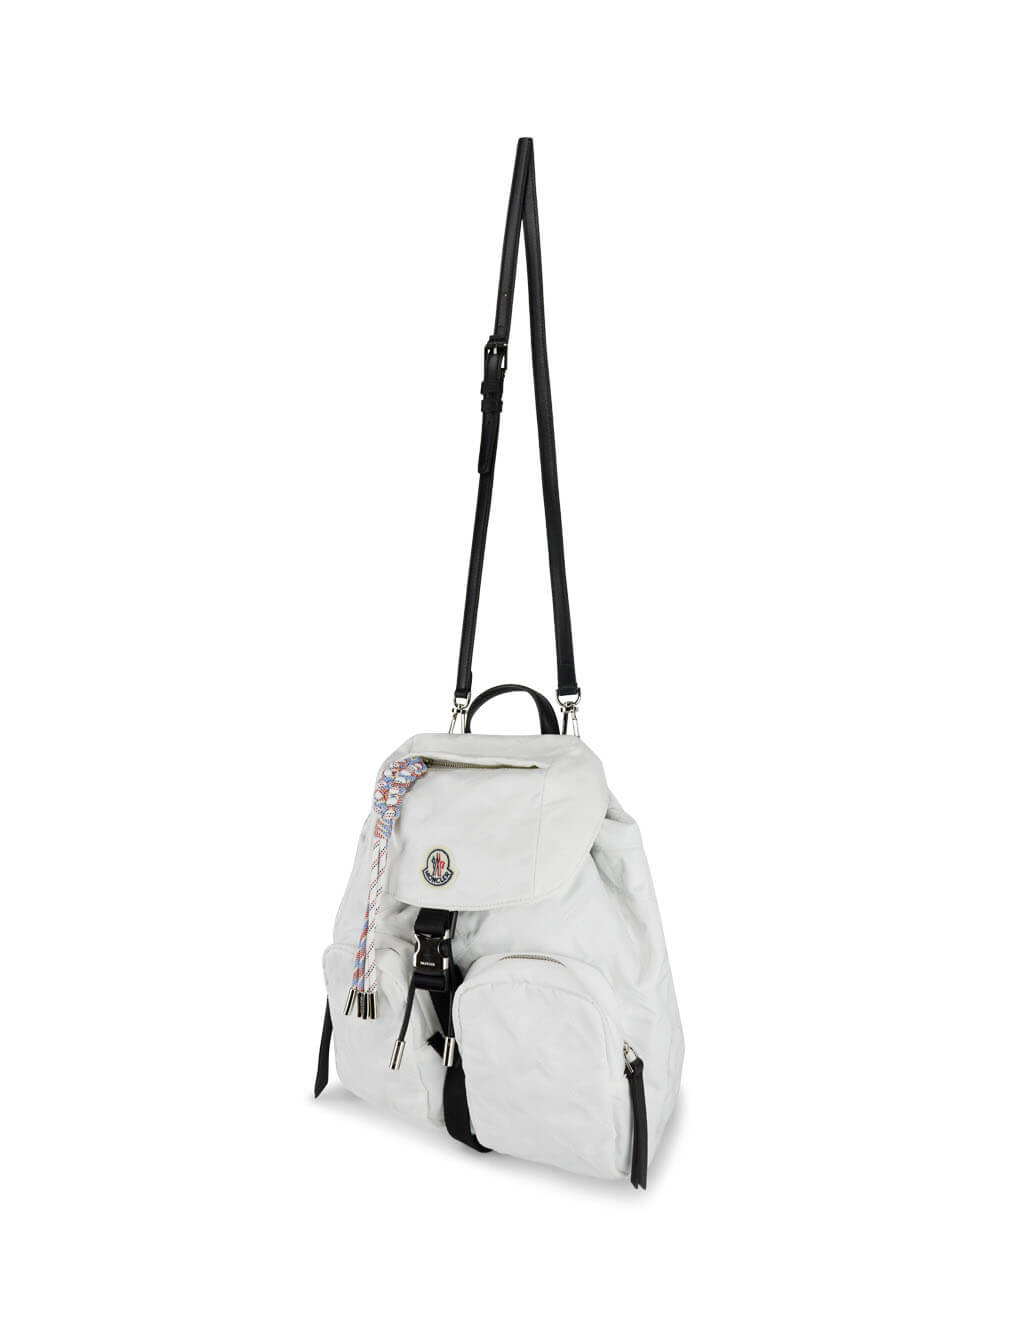 Women's White Moncler Dauphine Large Backpack 09B5A7001002SA9034